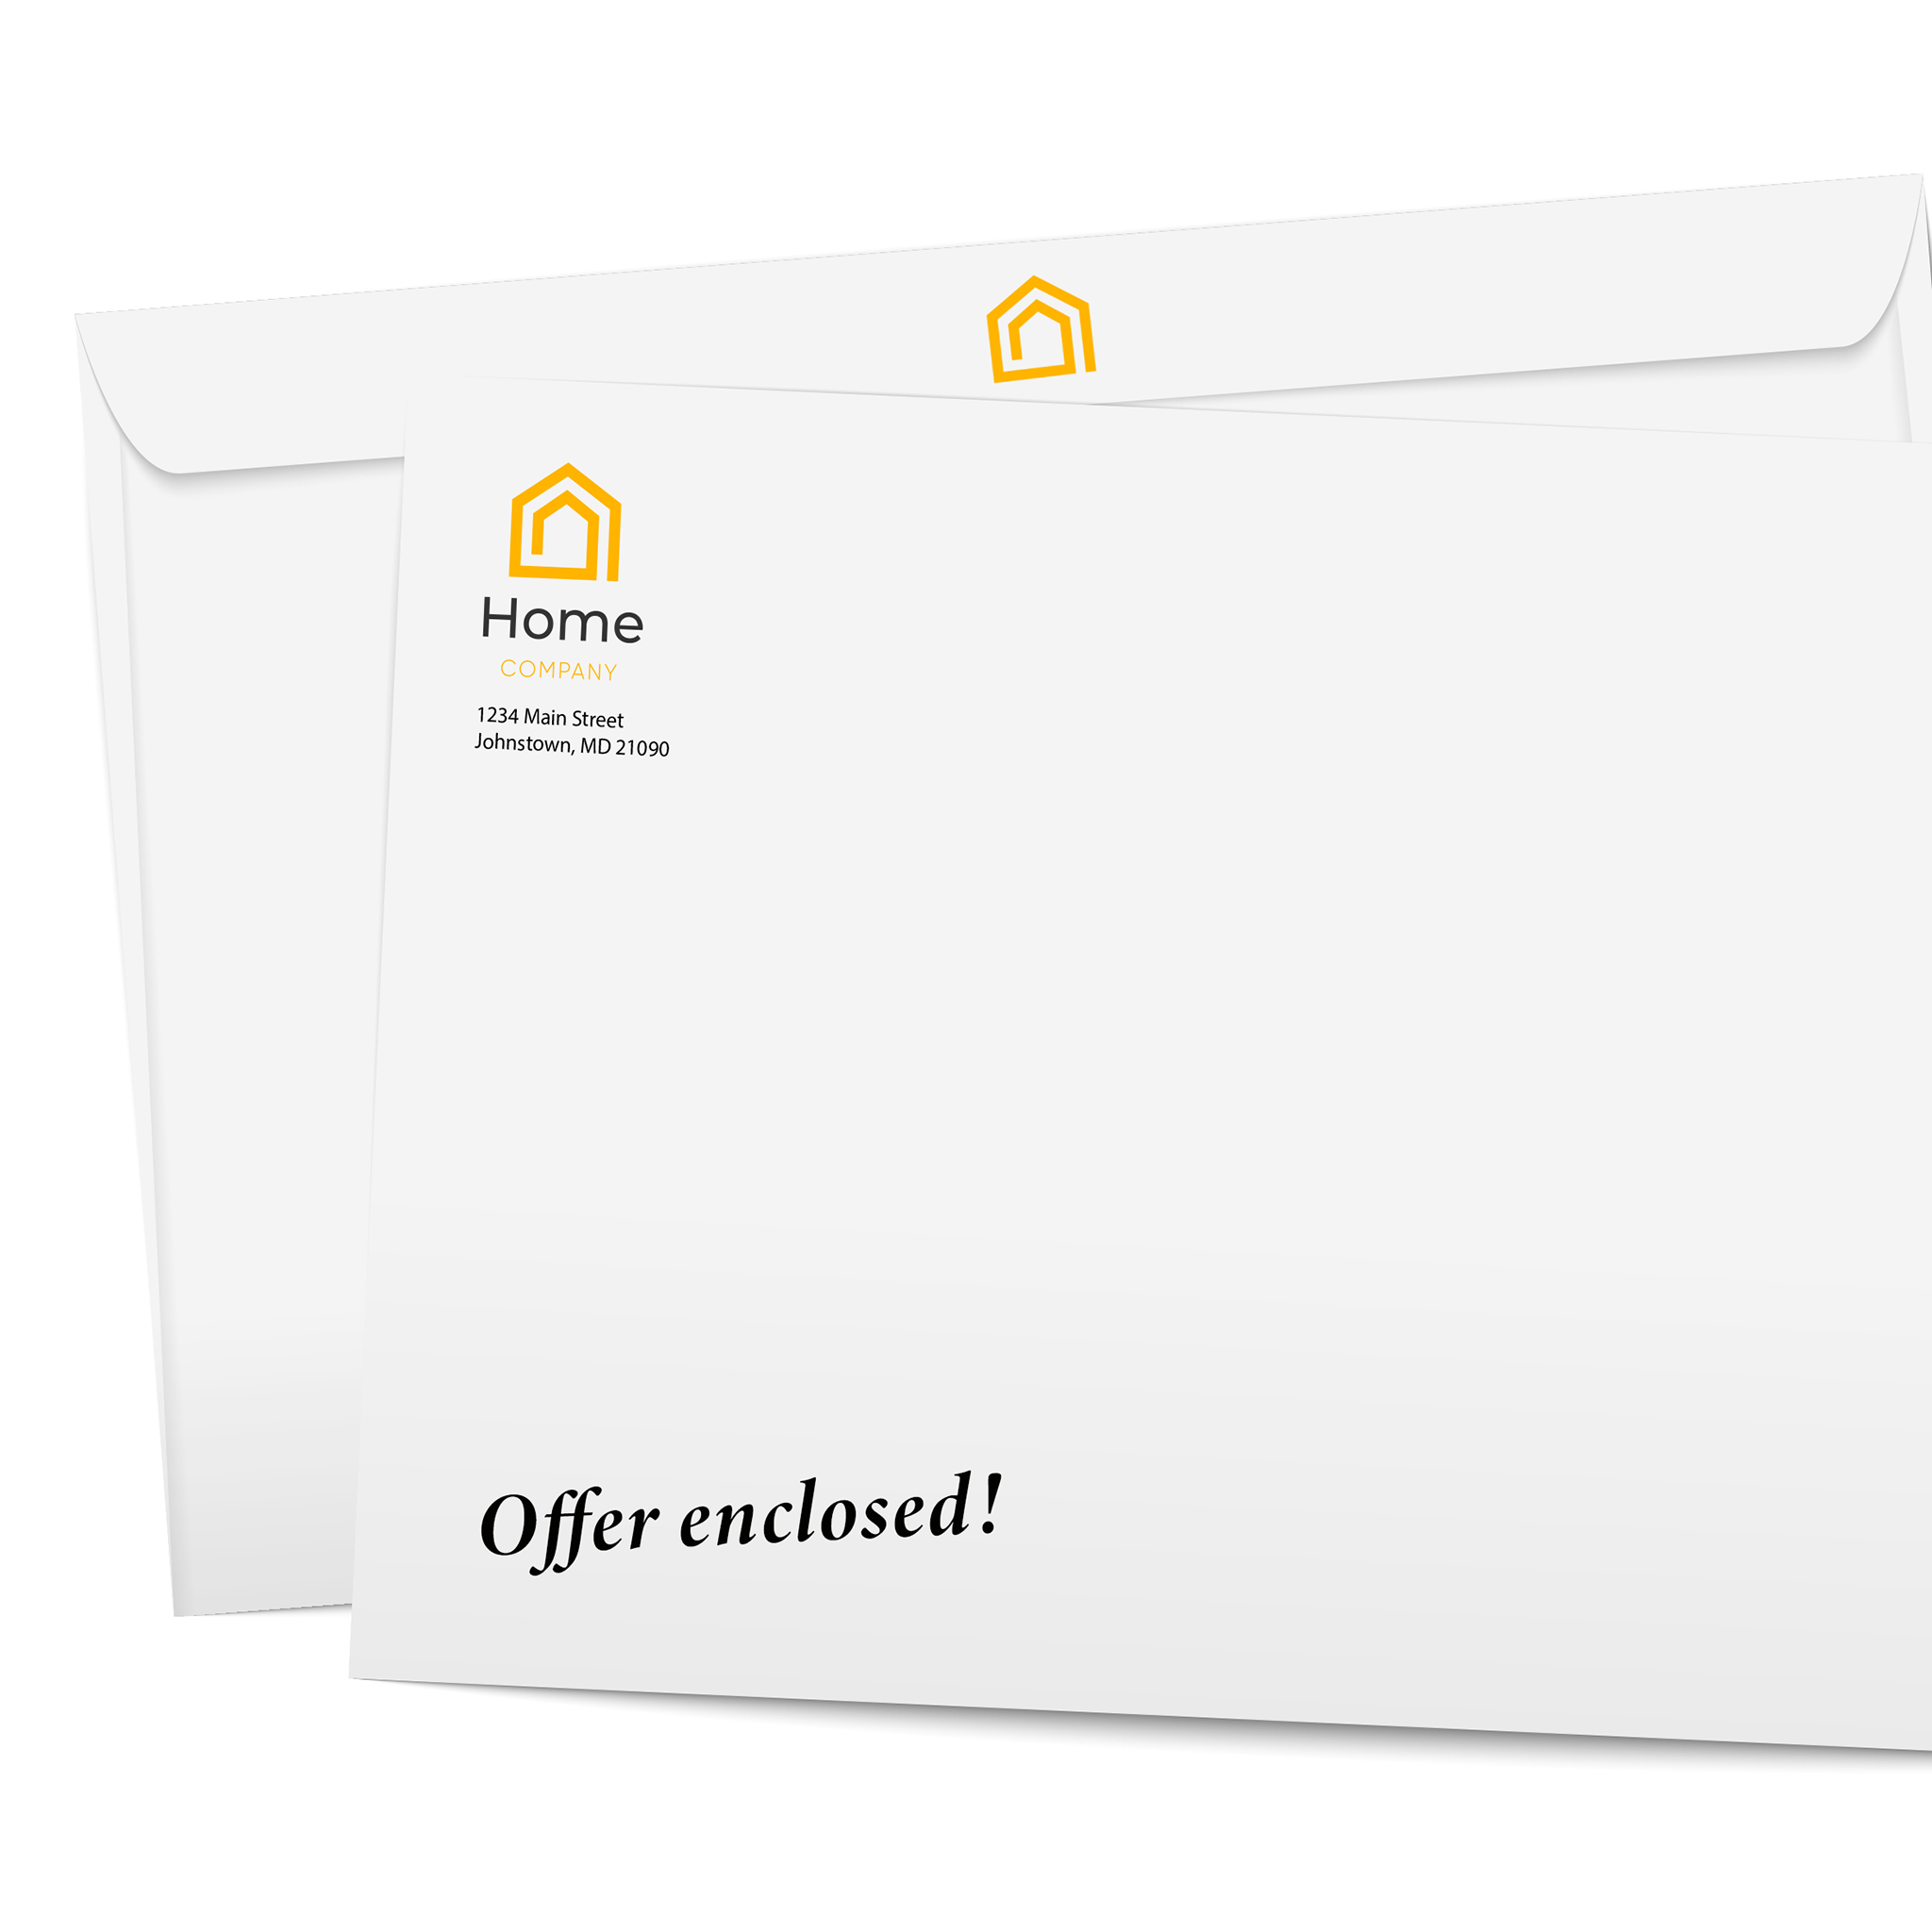 Custom printed corporate envelopes